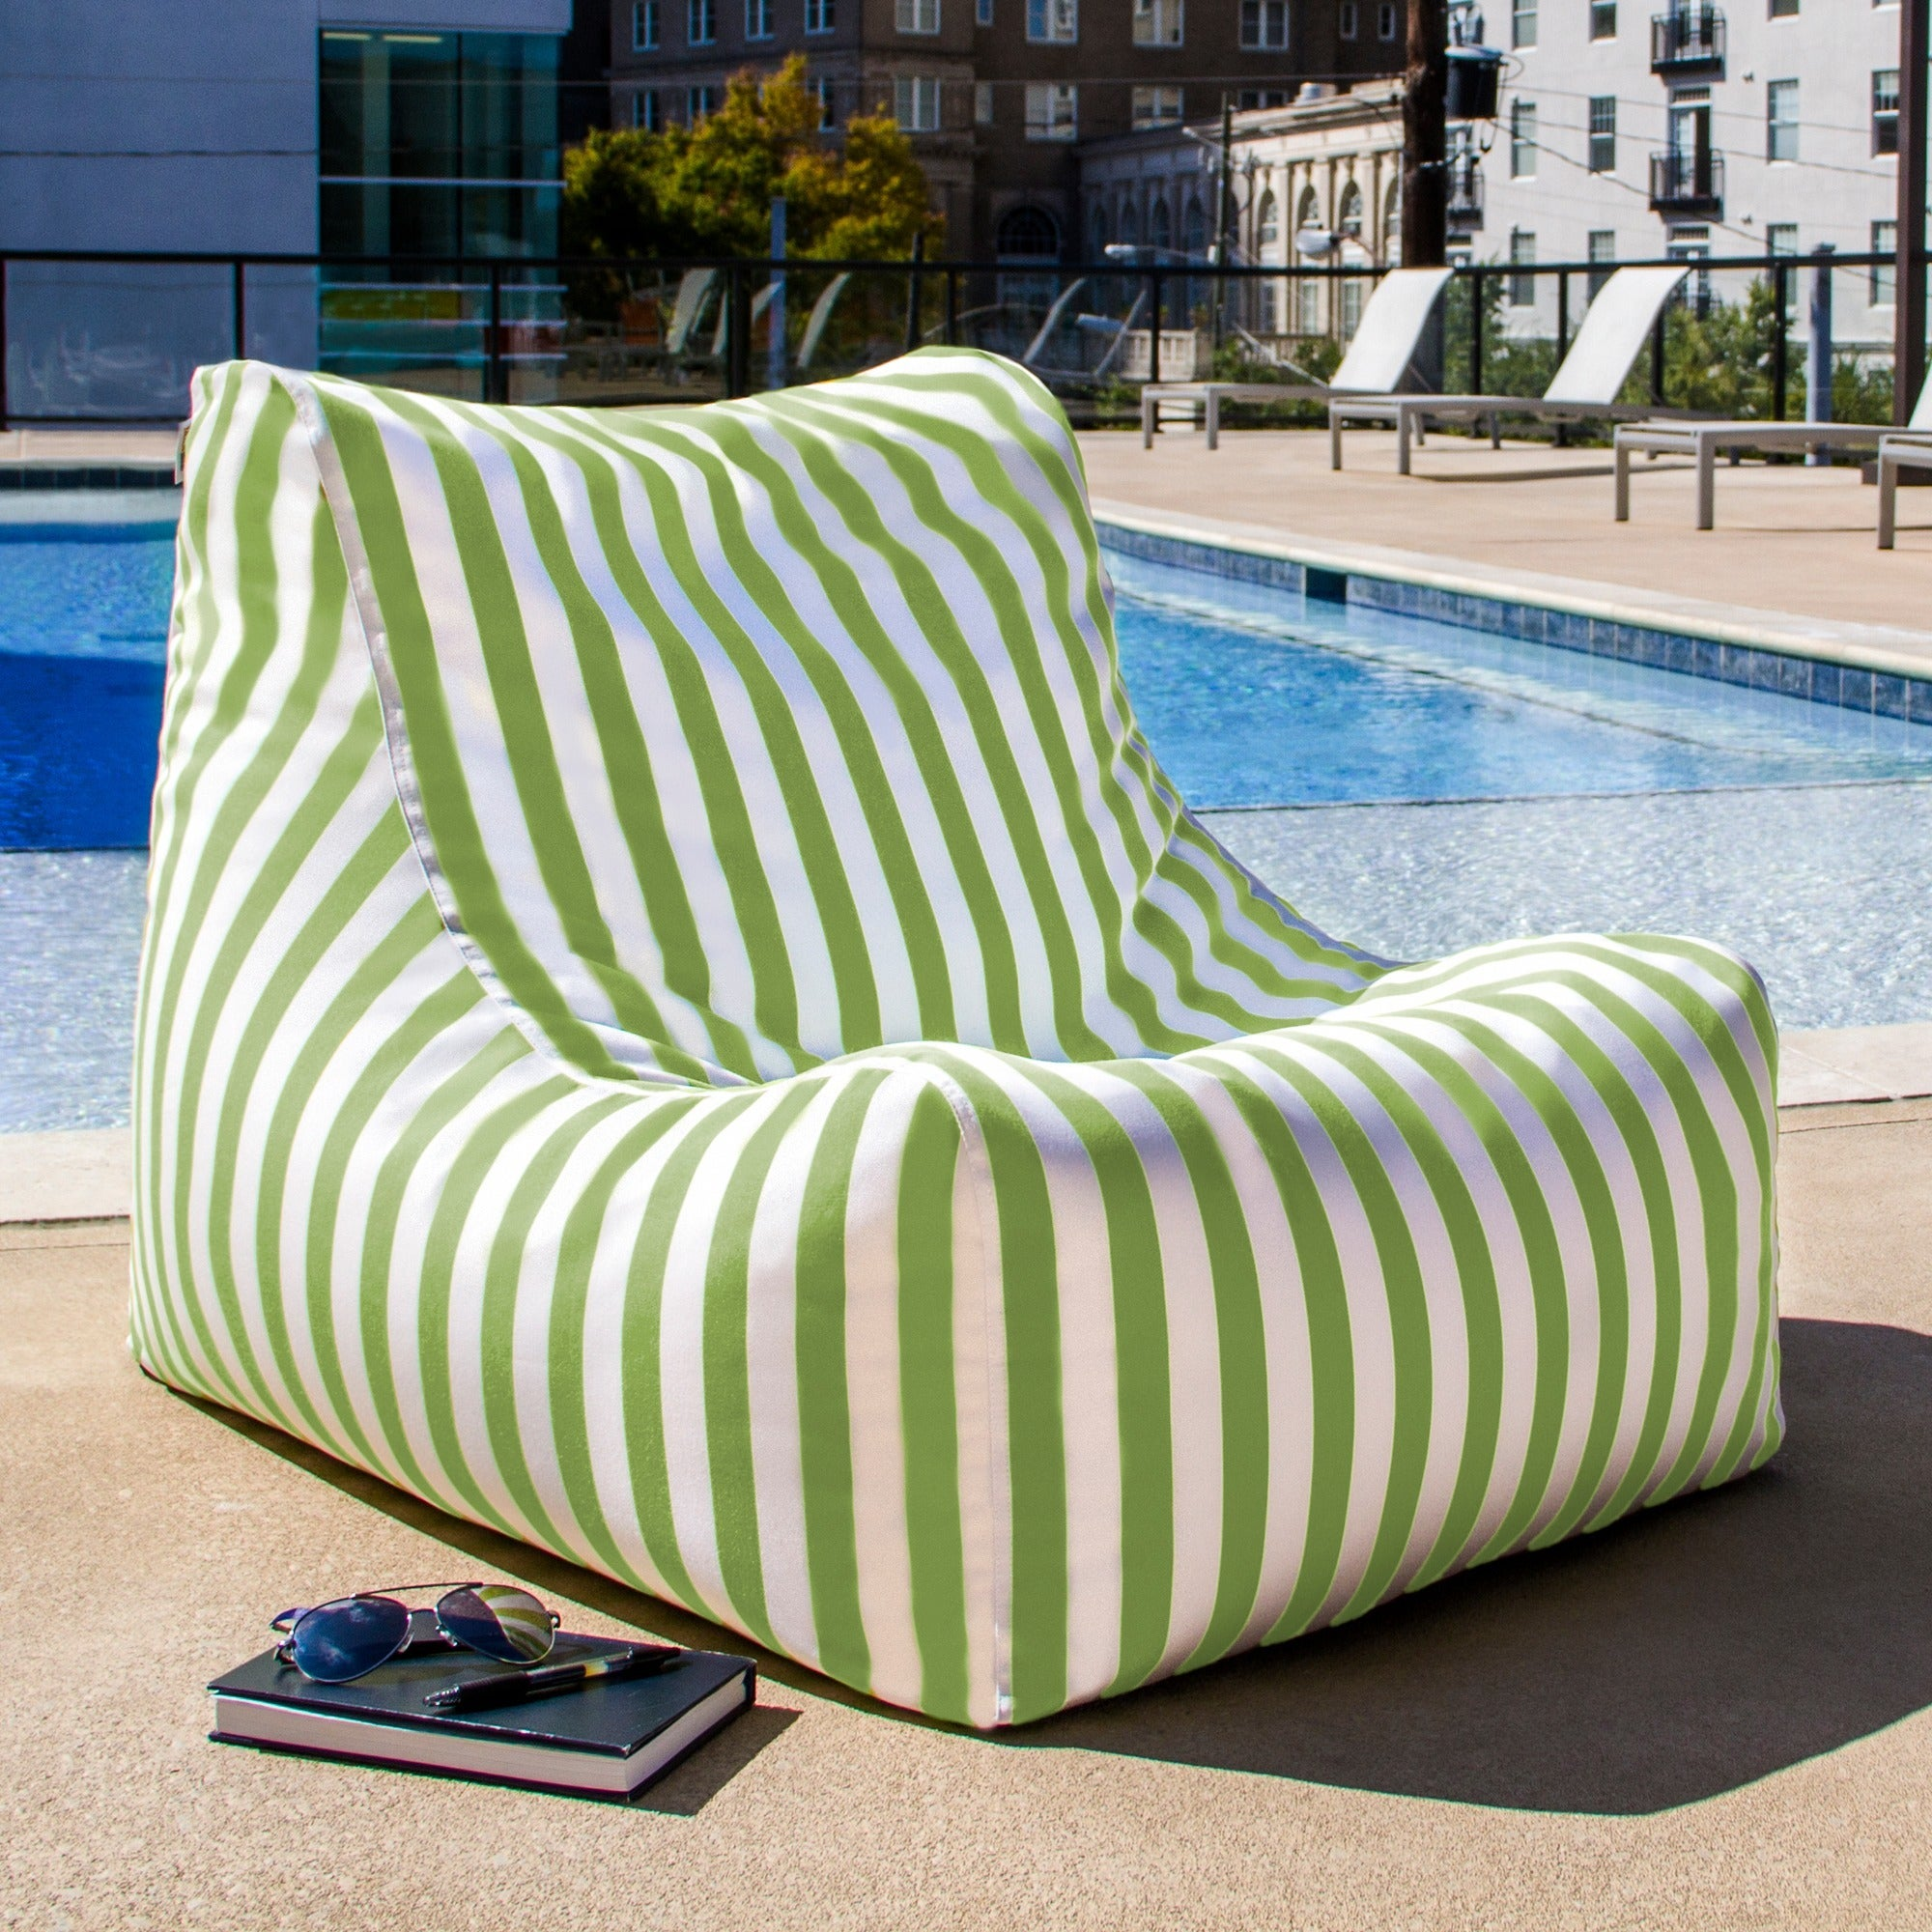 Charmant Jaxx Ponce Outdoor Bean Bag Patio Chair